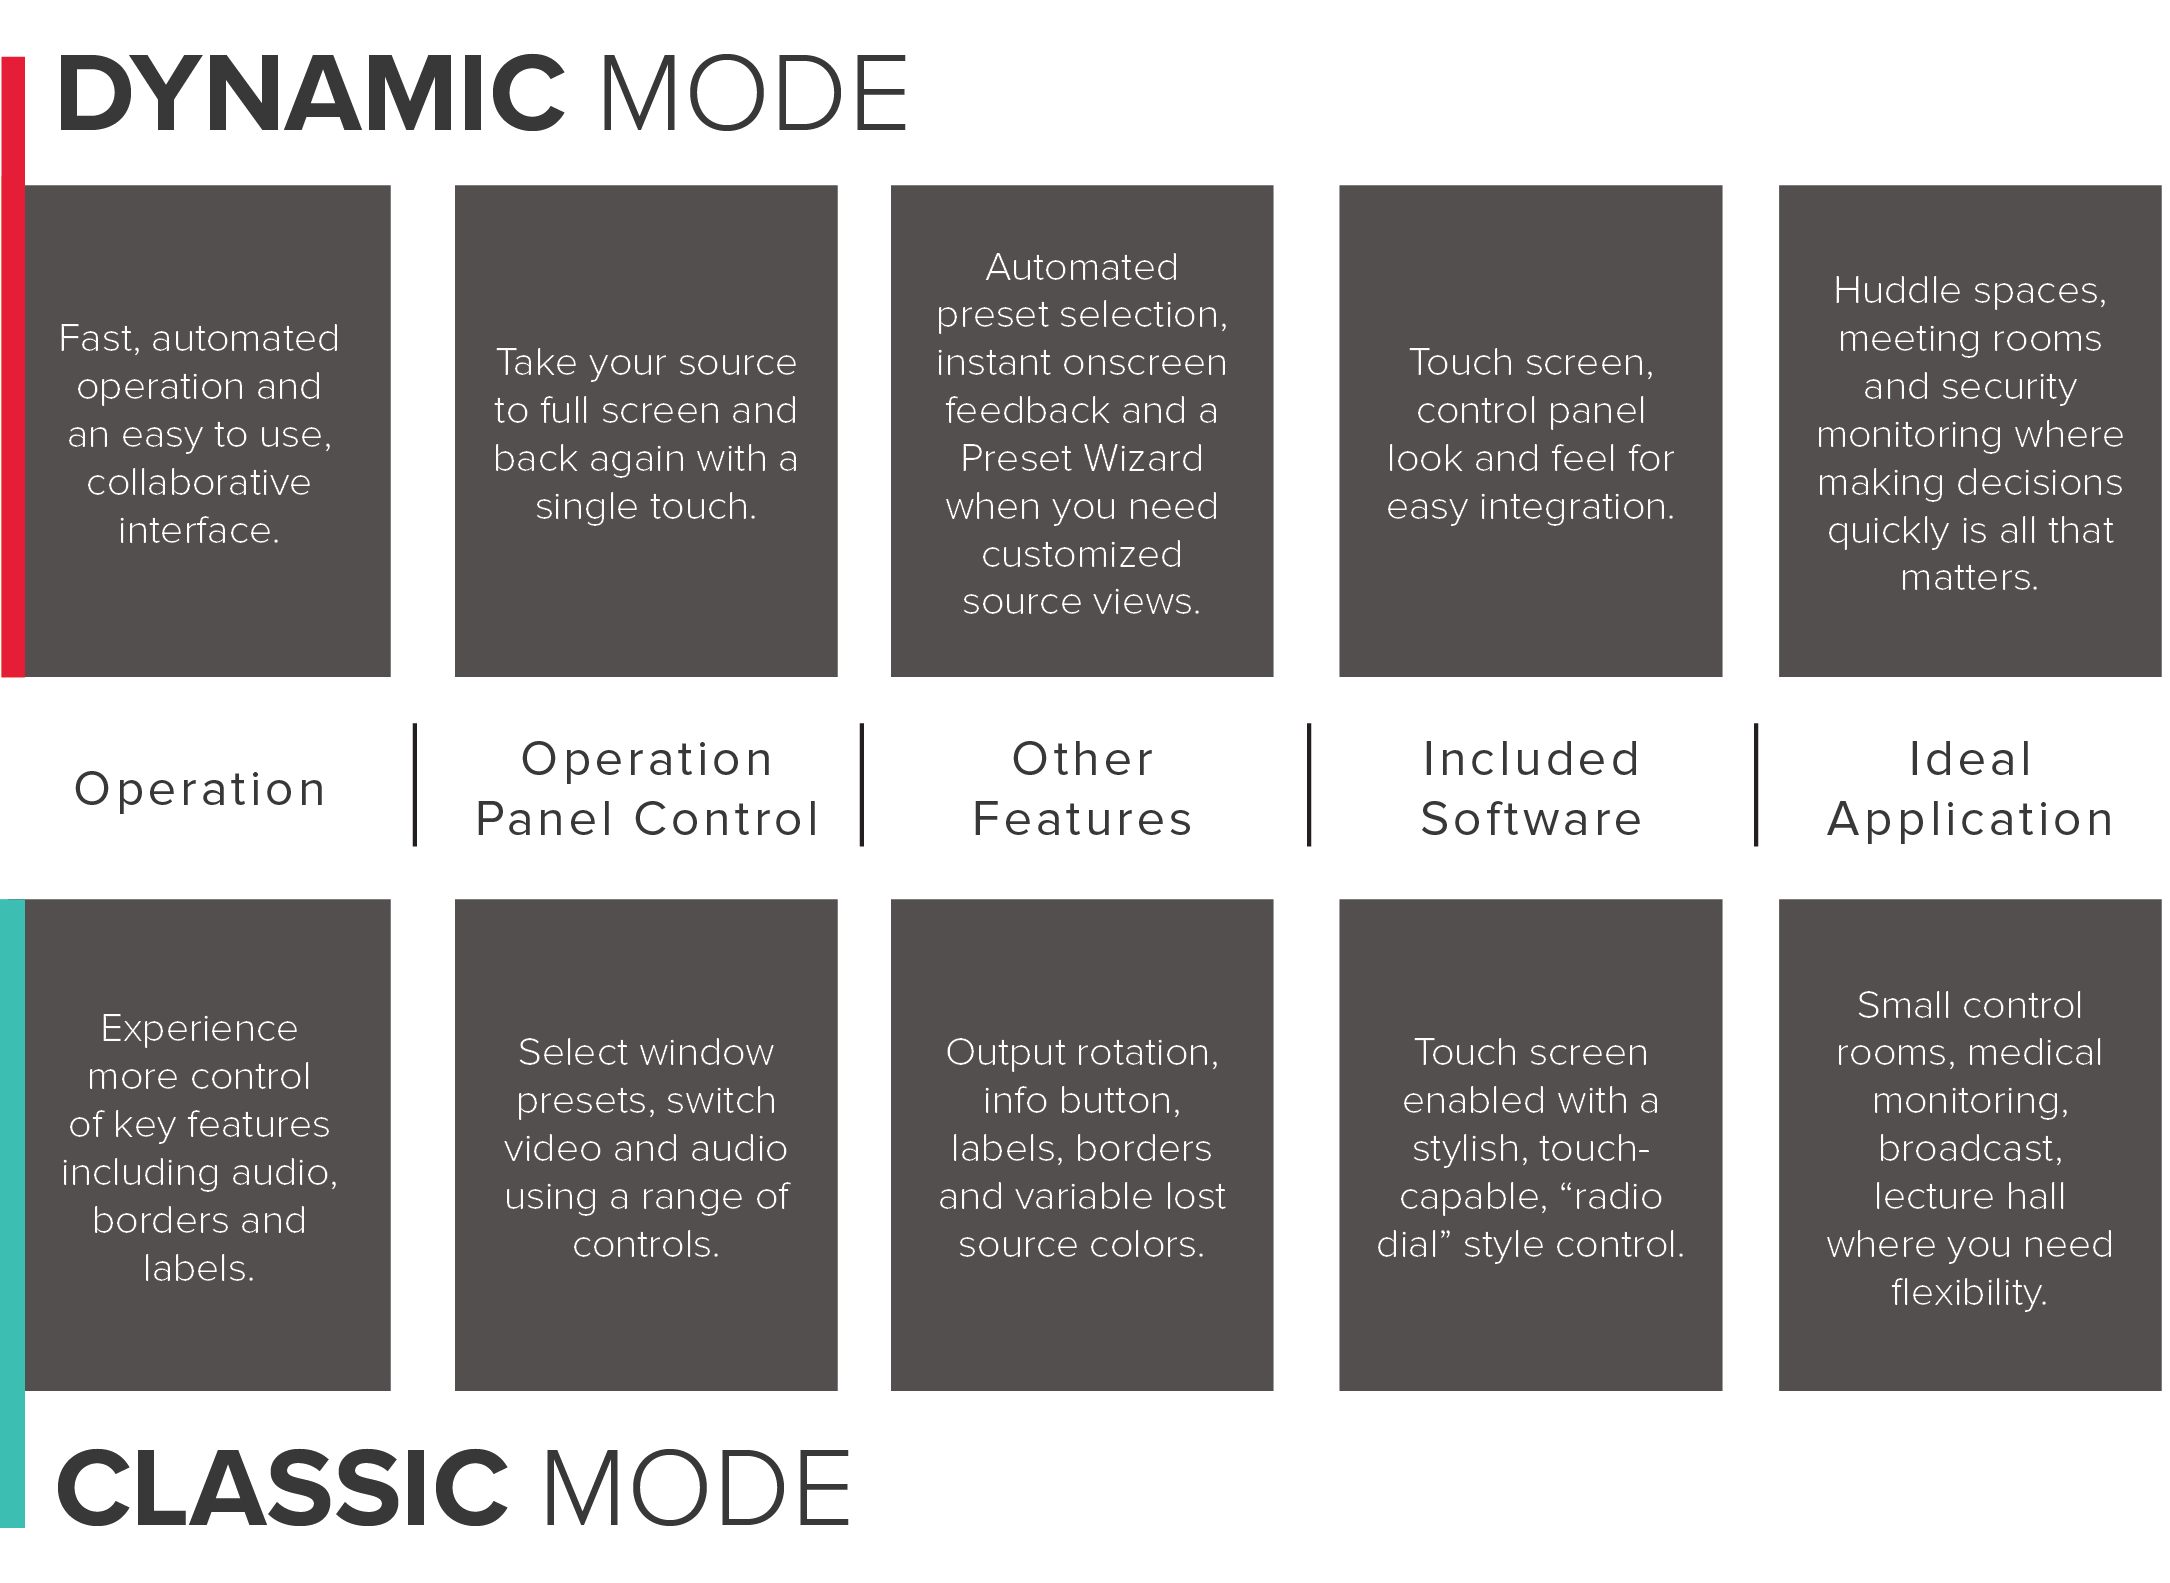 Dynamic and Classic Mode web